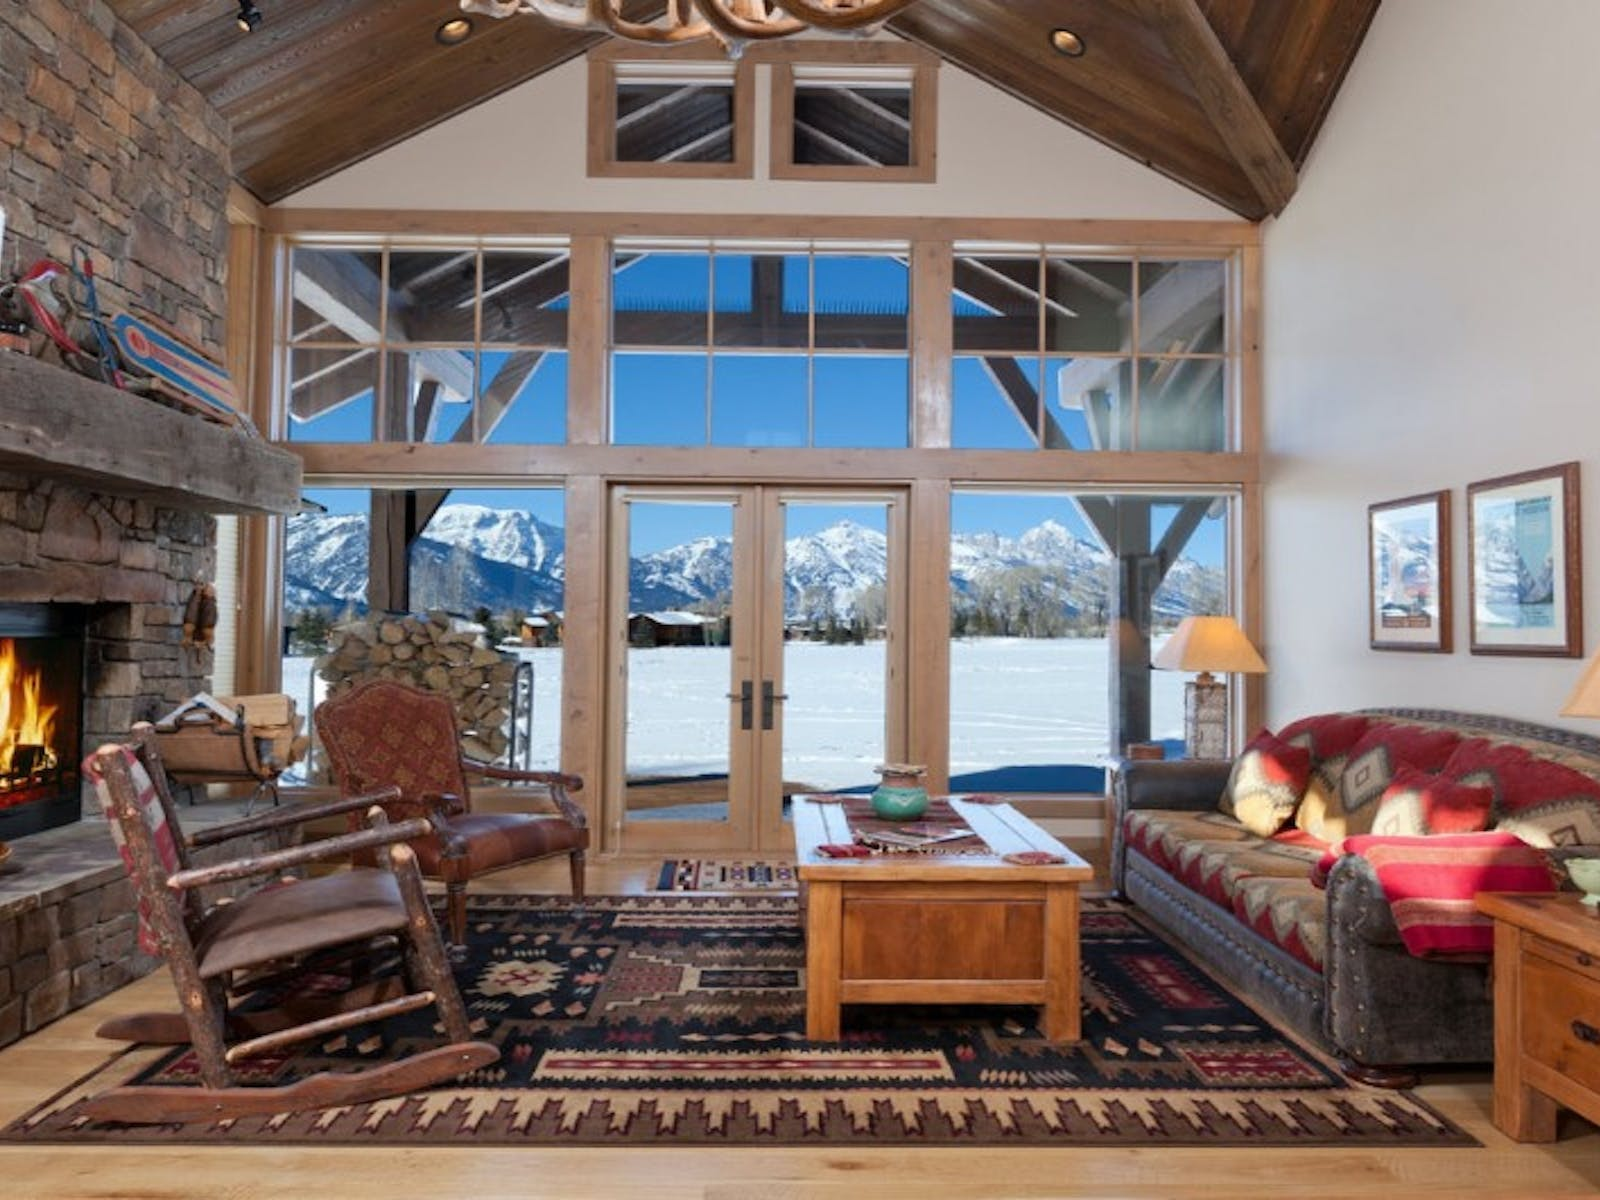 stone fireplace and cozy decor inside jackson hole, wy cabin